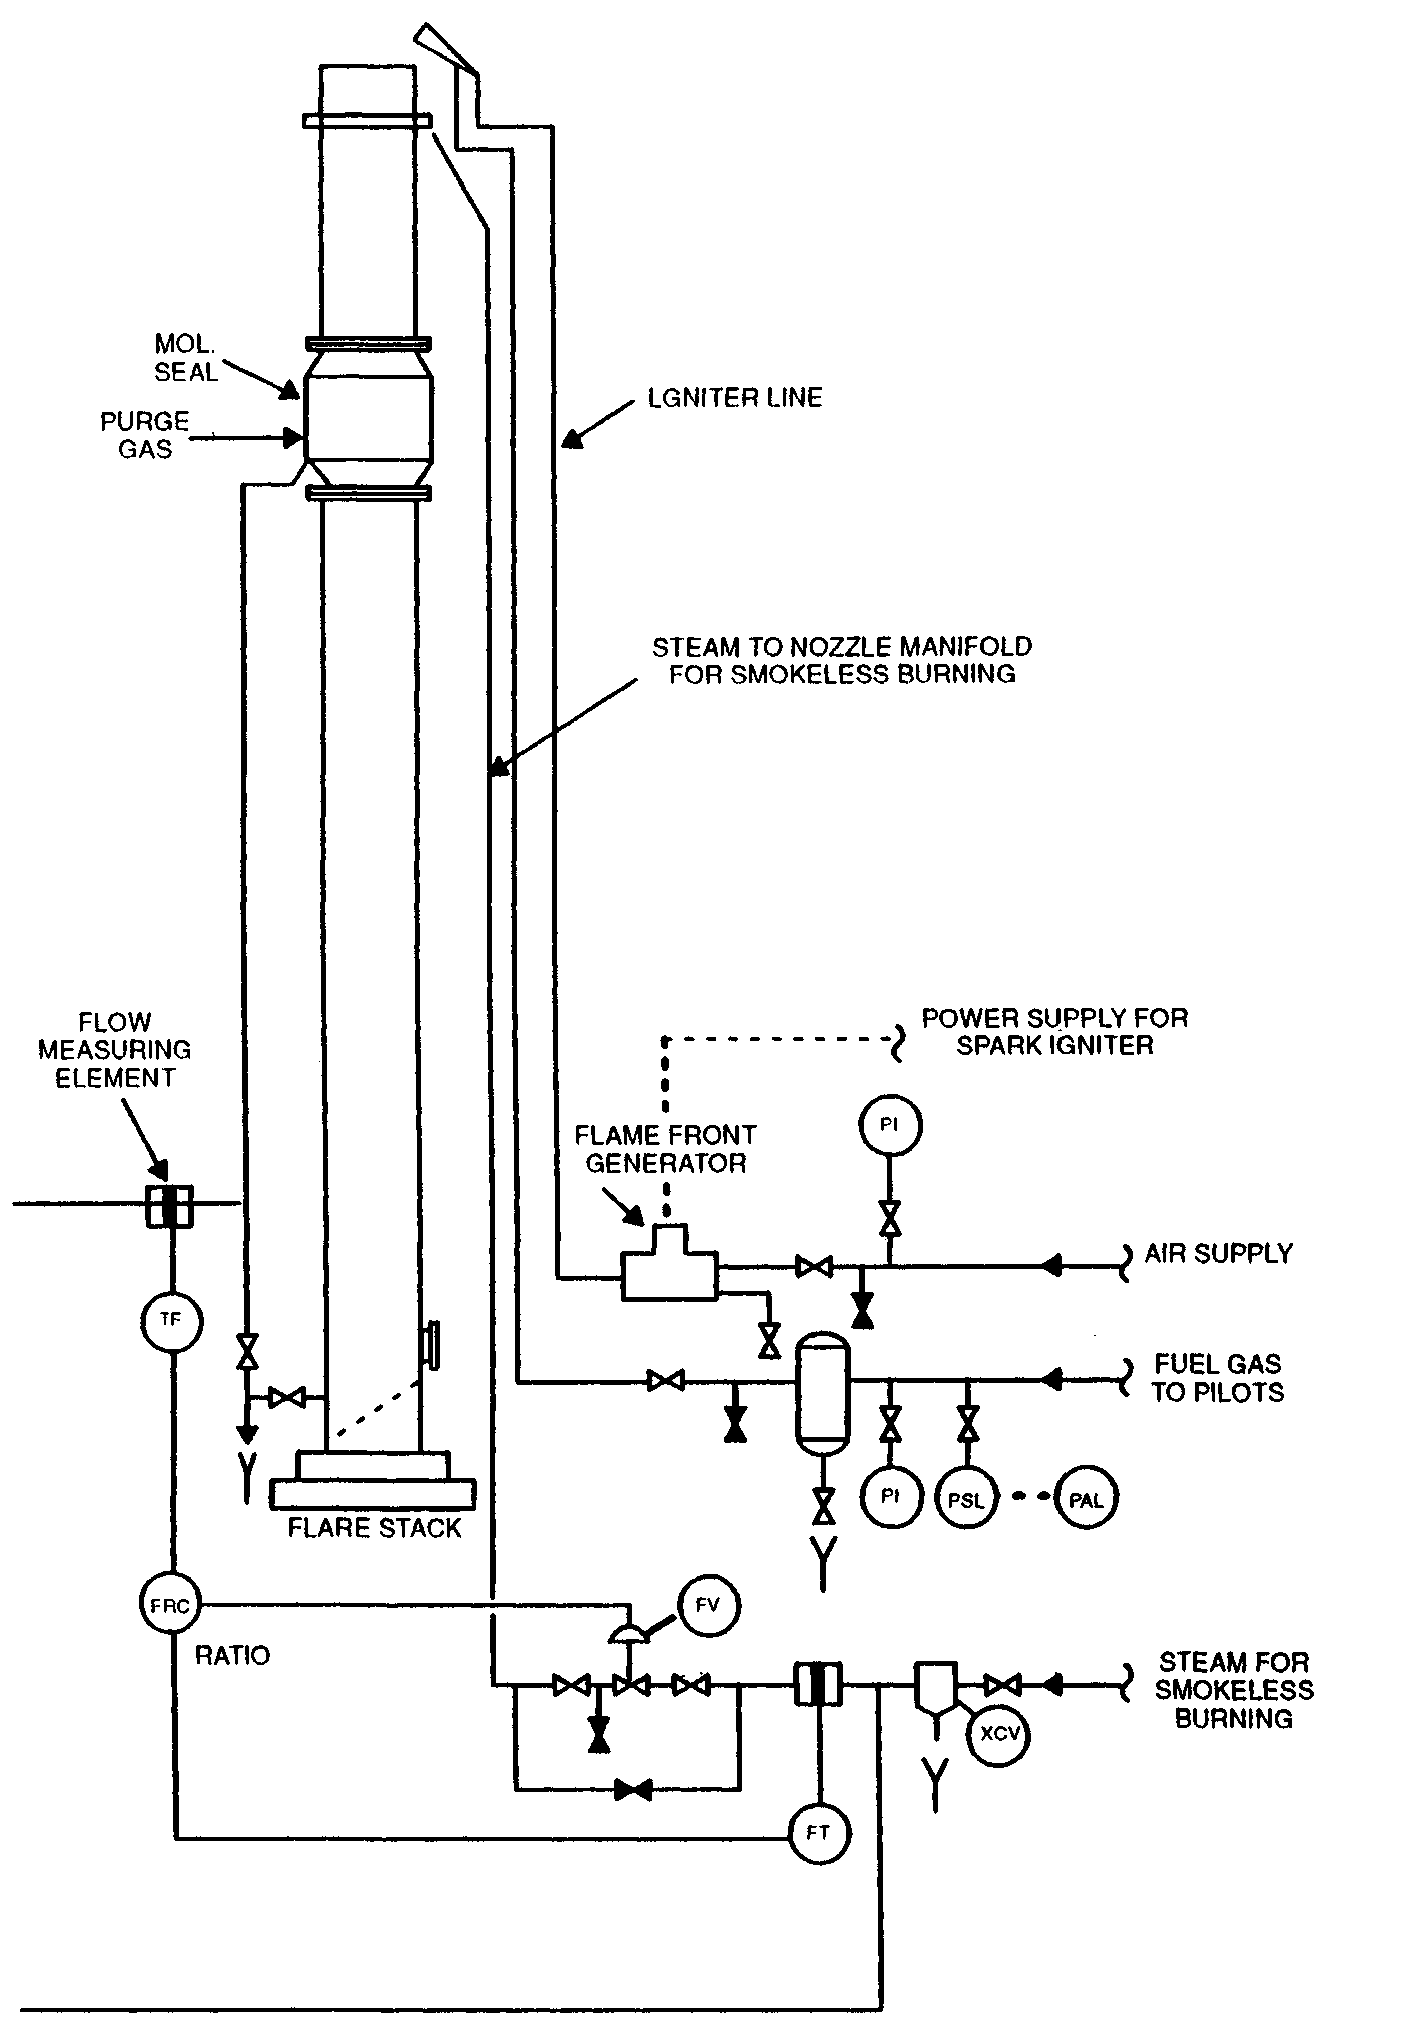 Pressure Relief Valves And Flares For The Process Industries Costello Pilotoperated Hydraulic Circuits Valve Ignition System Must Reliably Ignite Pilot Modern Techniques Include Flame Front Generators Electrical Spark Plug Type Igniters Aspirated Air